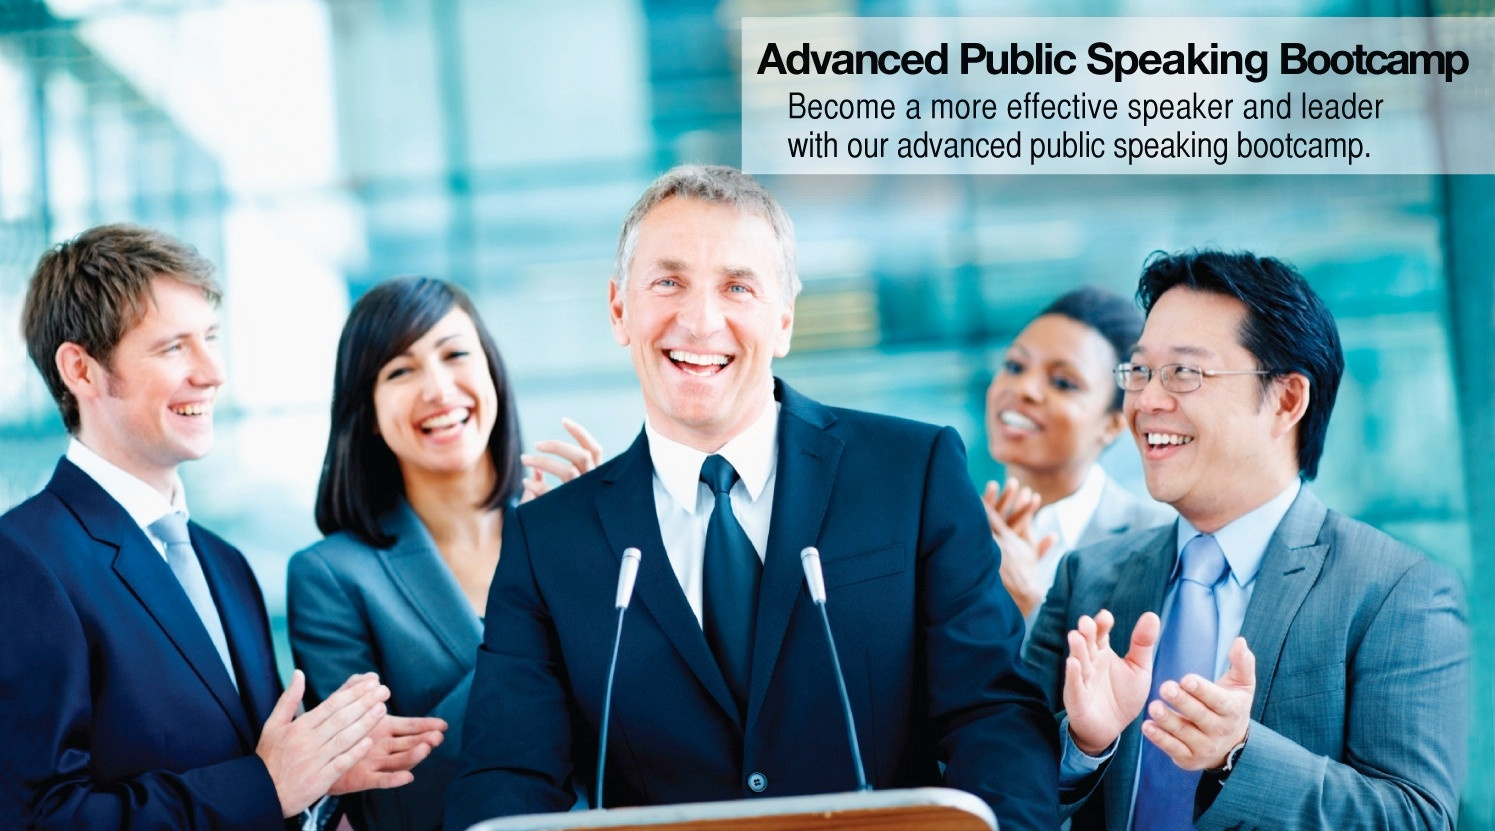 Advanced Public Speaking Training Bootcamp -Advanced hands-on public speaking training.